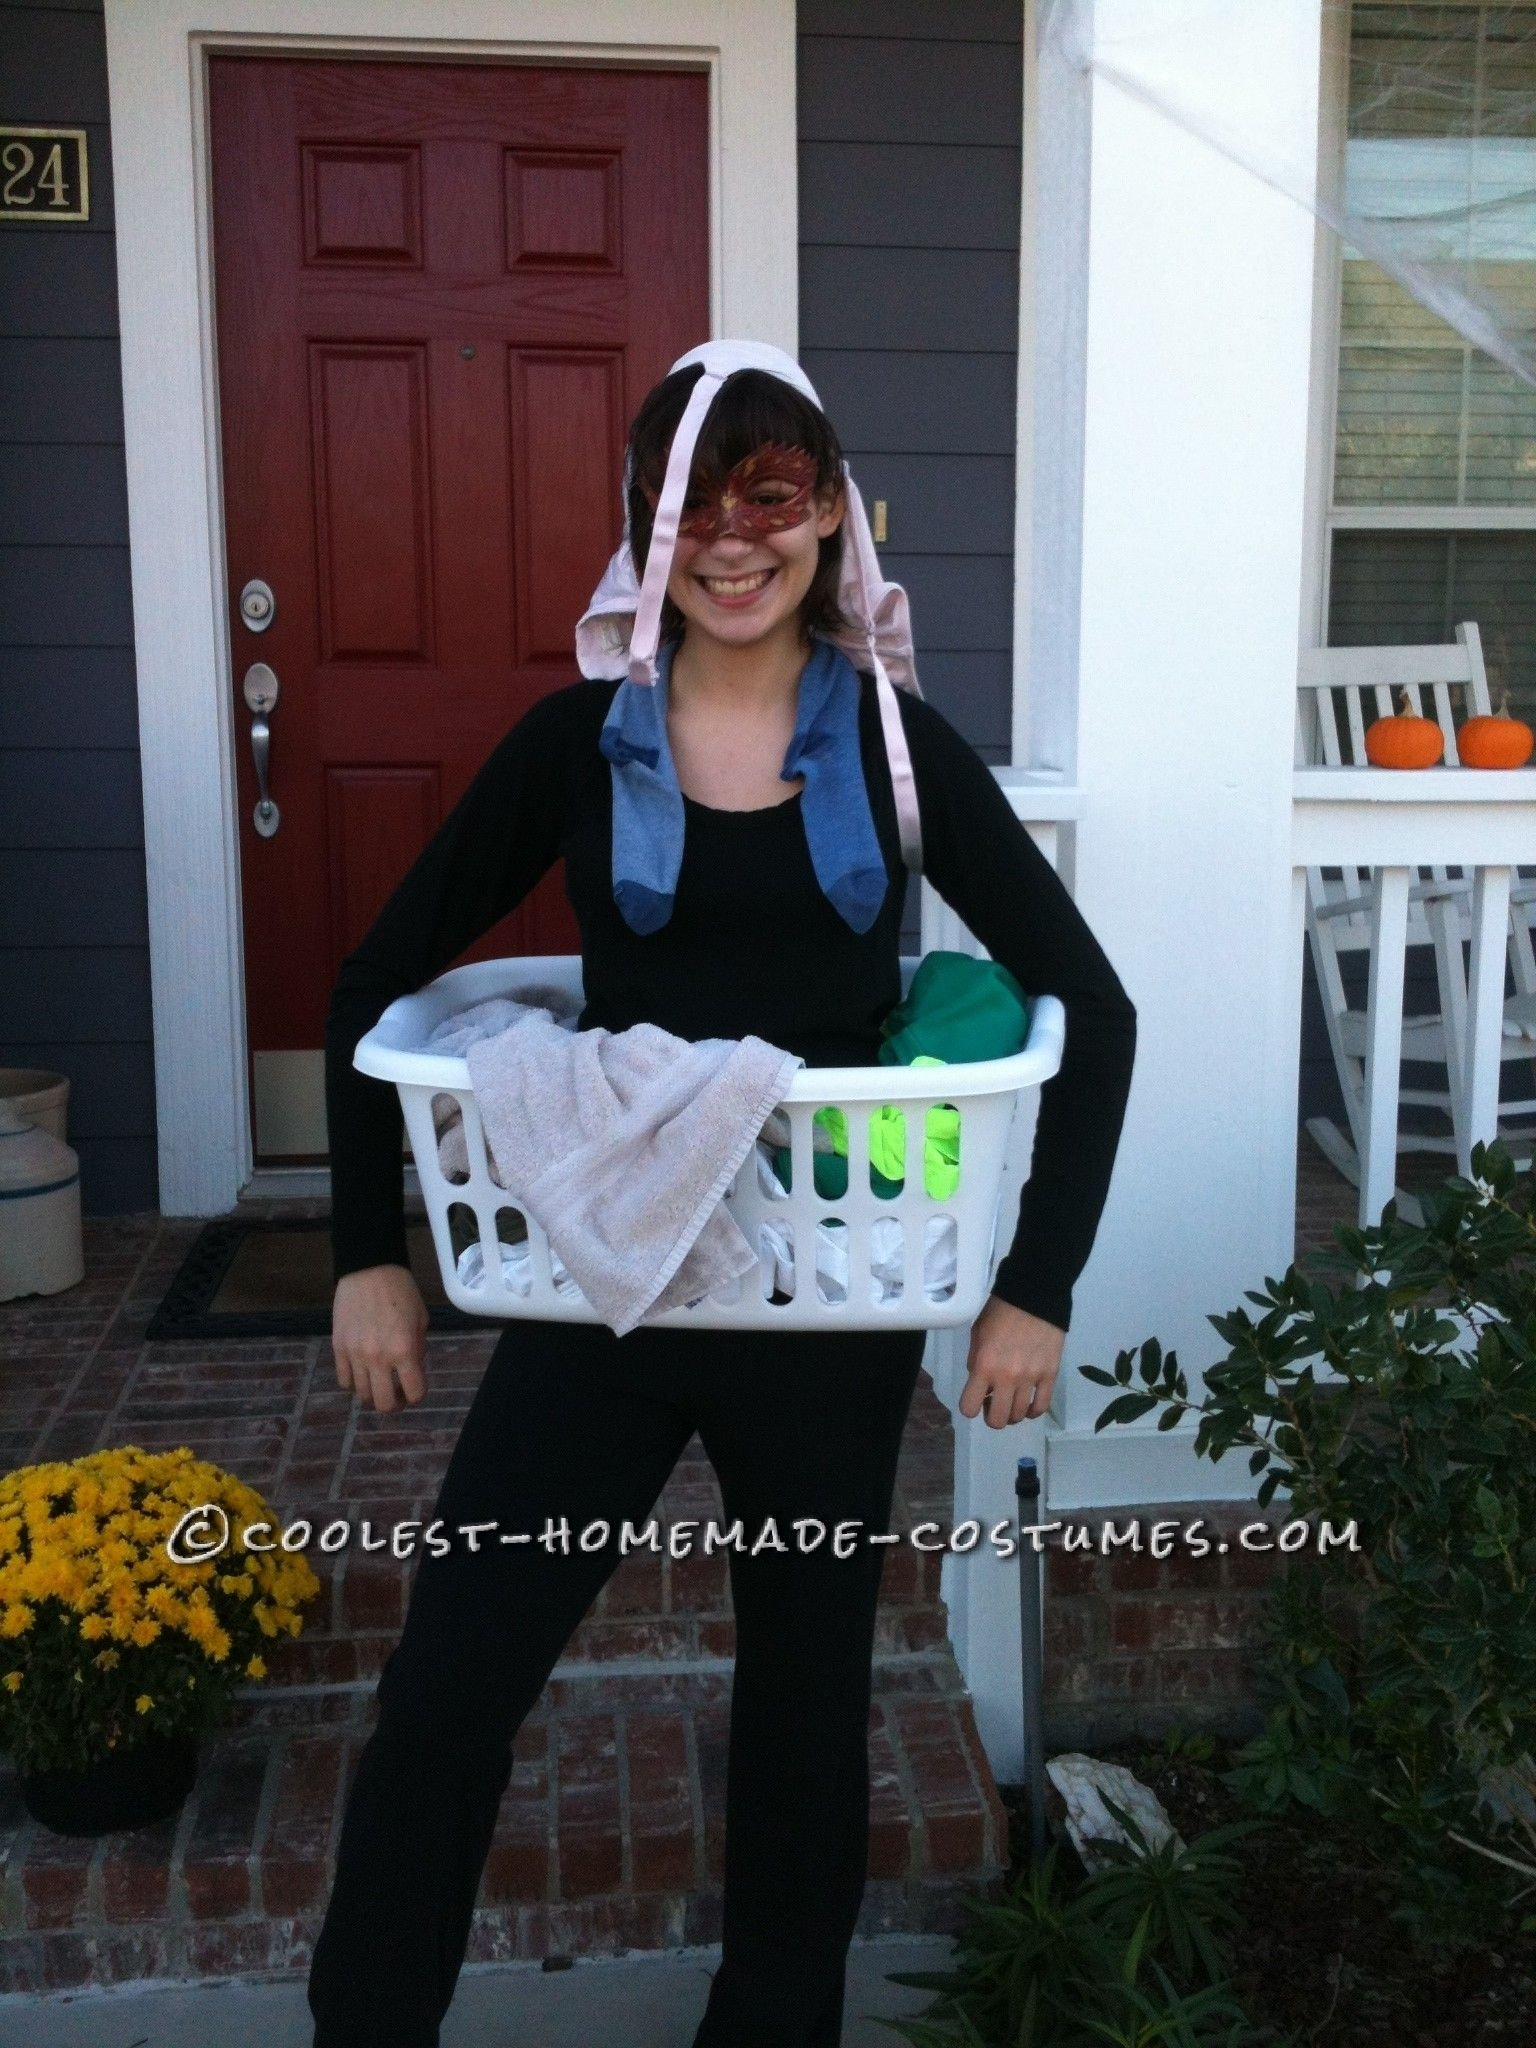 10 Beautiful Homemade Funny Halloween Costume Ideas last minute homemade costume idea dirty laundry homemade 2020